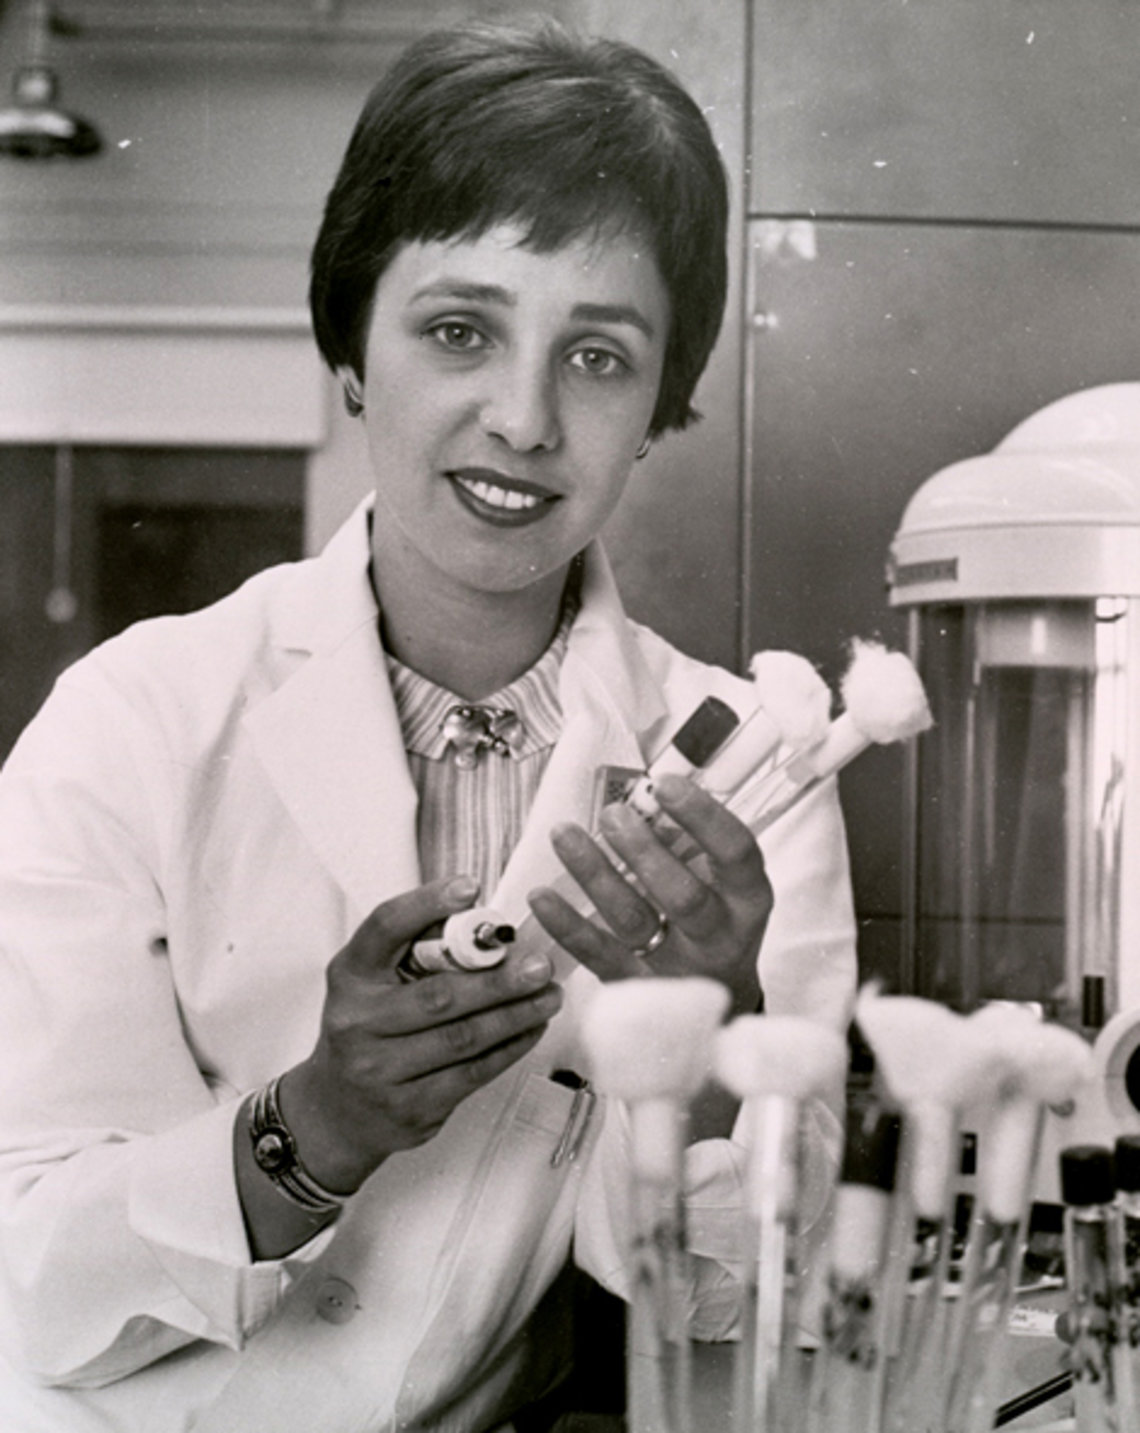 Dr. Maxine Singer holds test tube vials in the lab